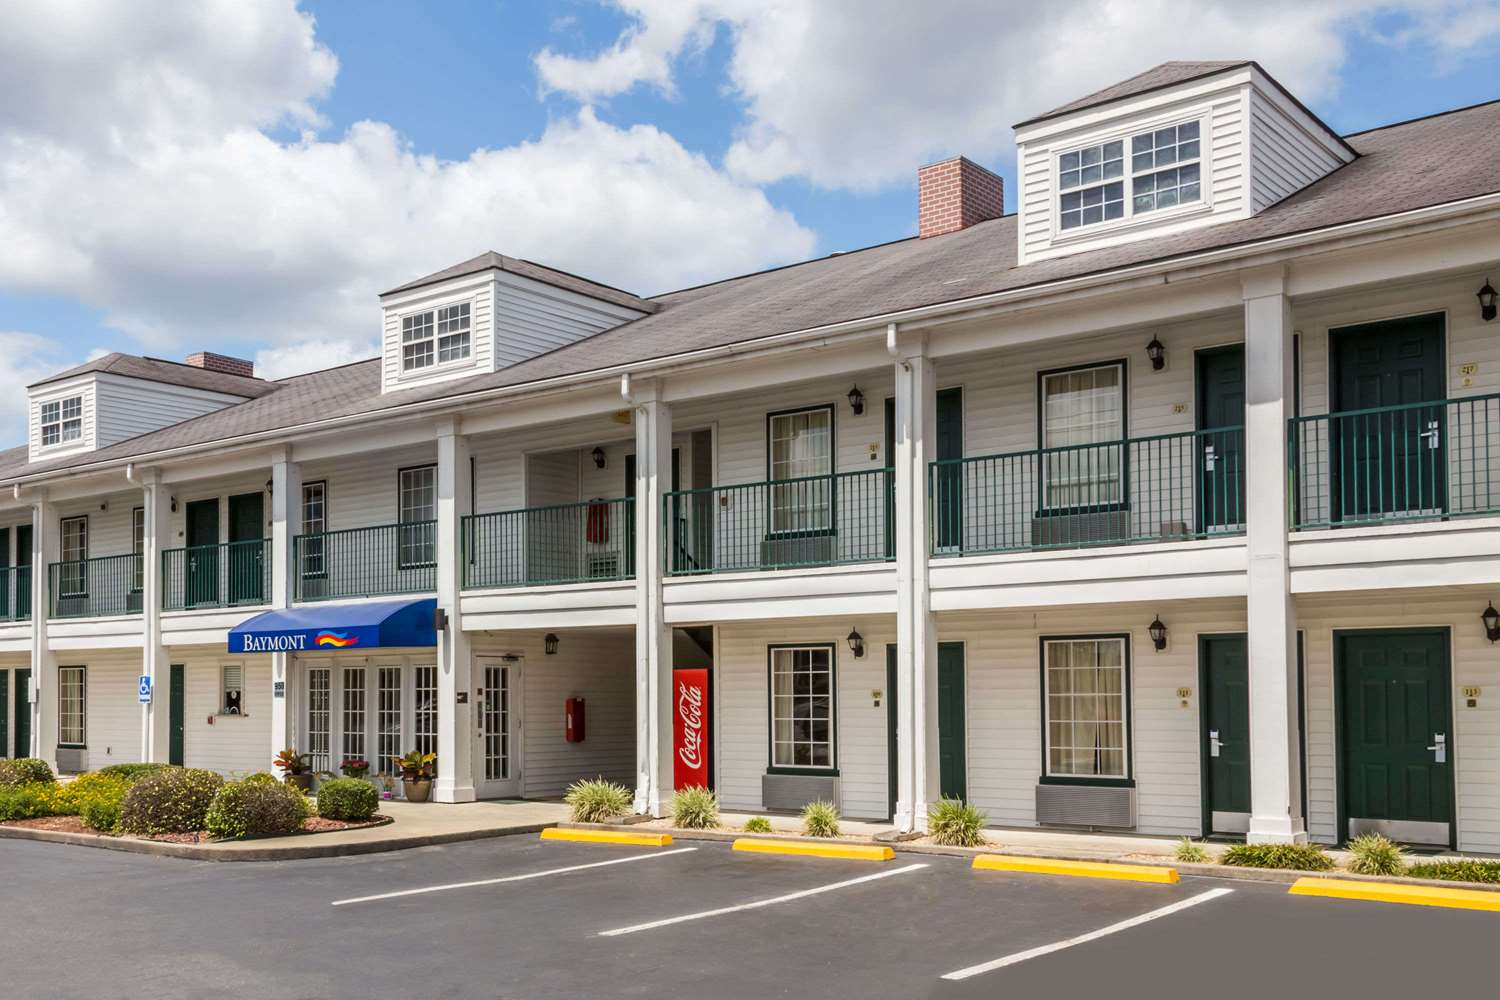 Exterior view - Baymont Inn & Suites Waycross